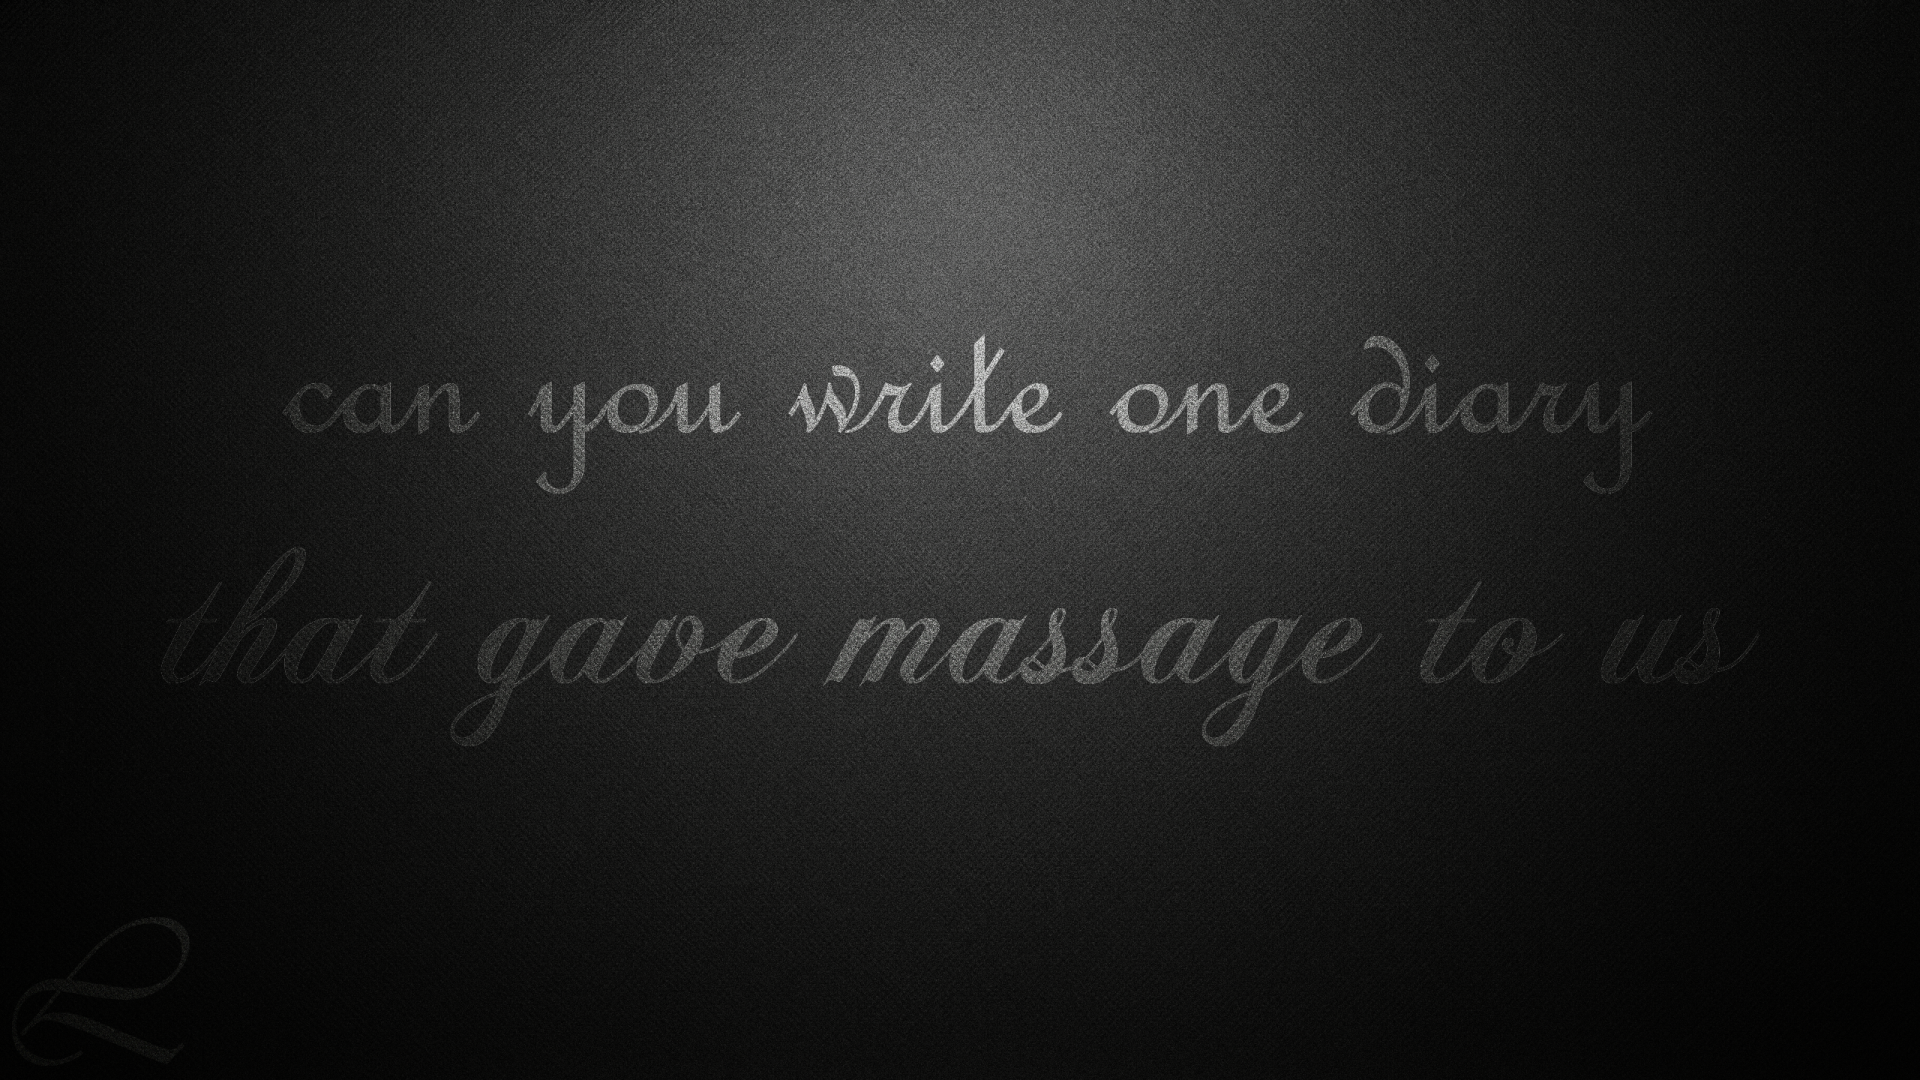 1920x1080 can you write one diary that how to set wallpaper on your desktop